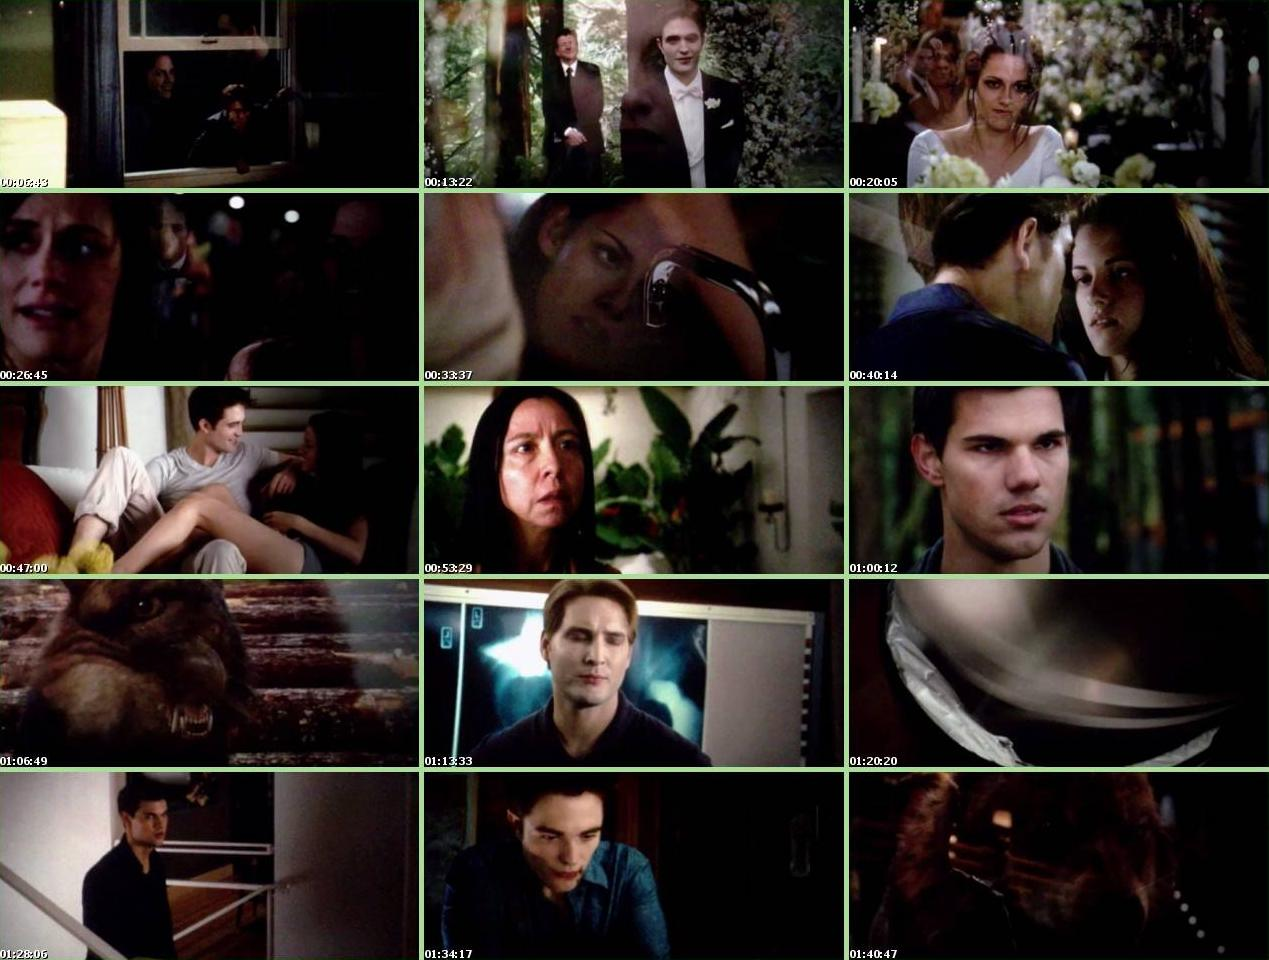 Download Filem Intruders 2011 Ts Twilight Saga Breaking Dawn P 1 2011 TS 400MB Movie Detector x